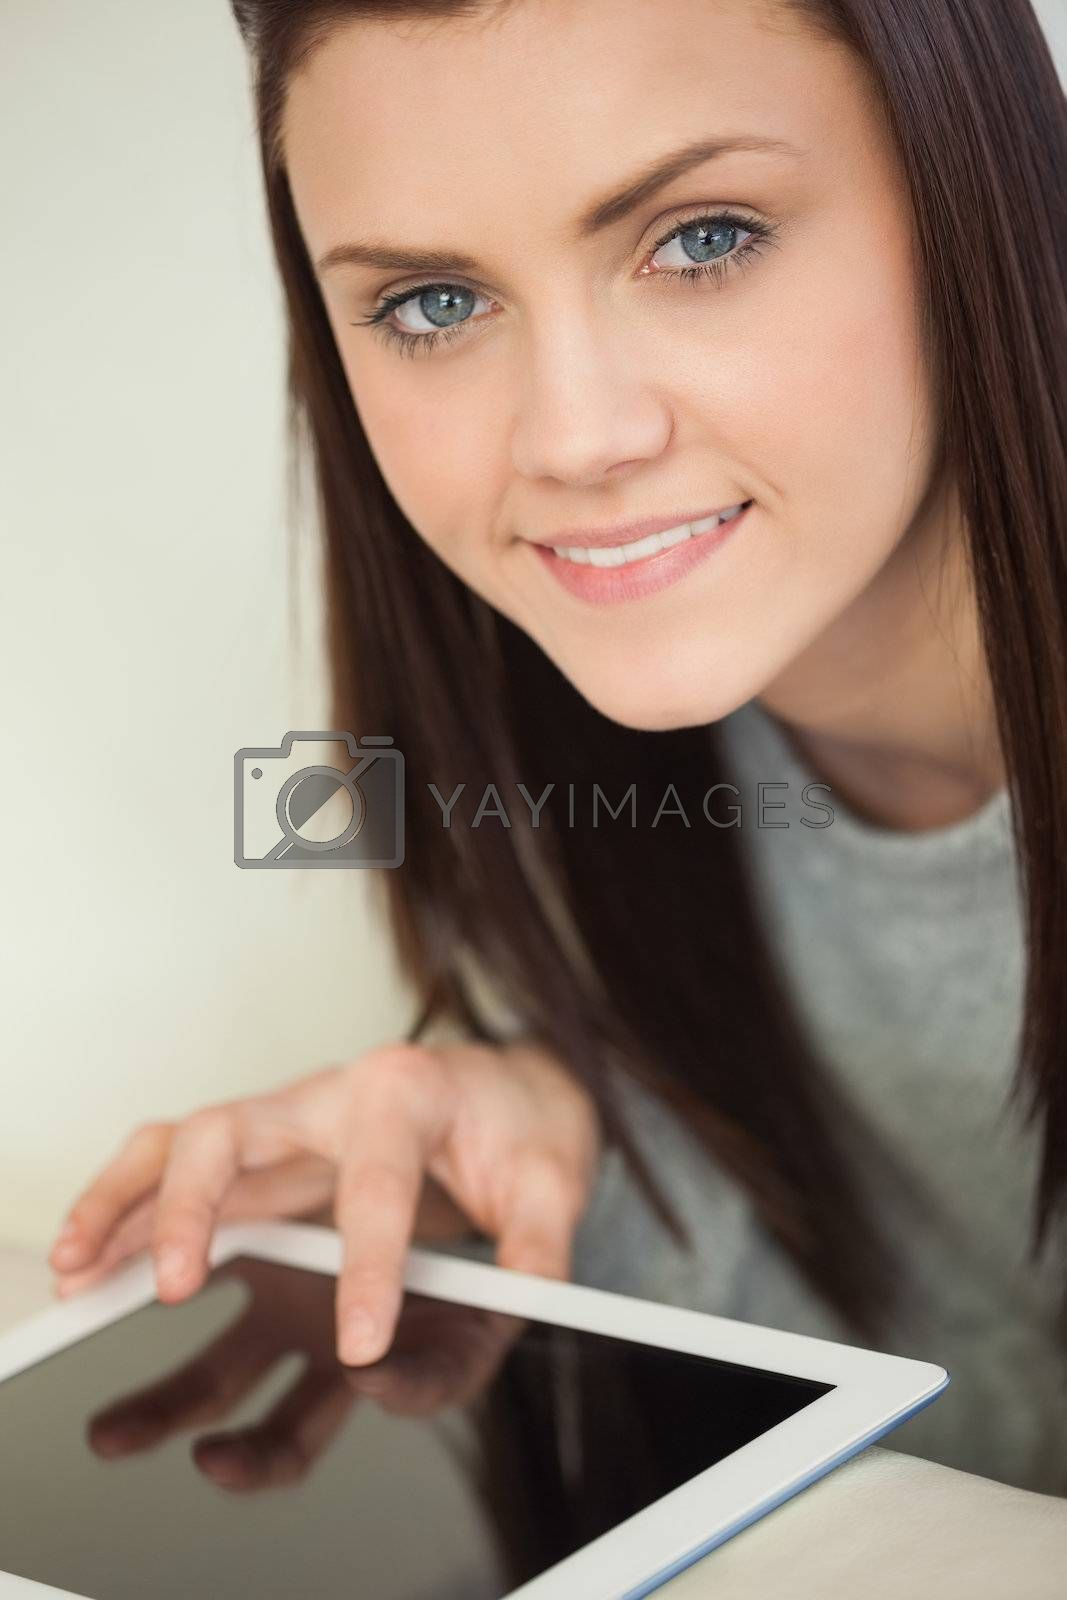 Smiling pretty girl using a tablet pc on a sofa looking at camera by Wavebreakmedia